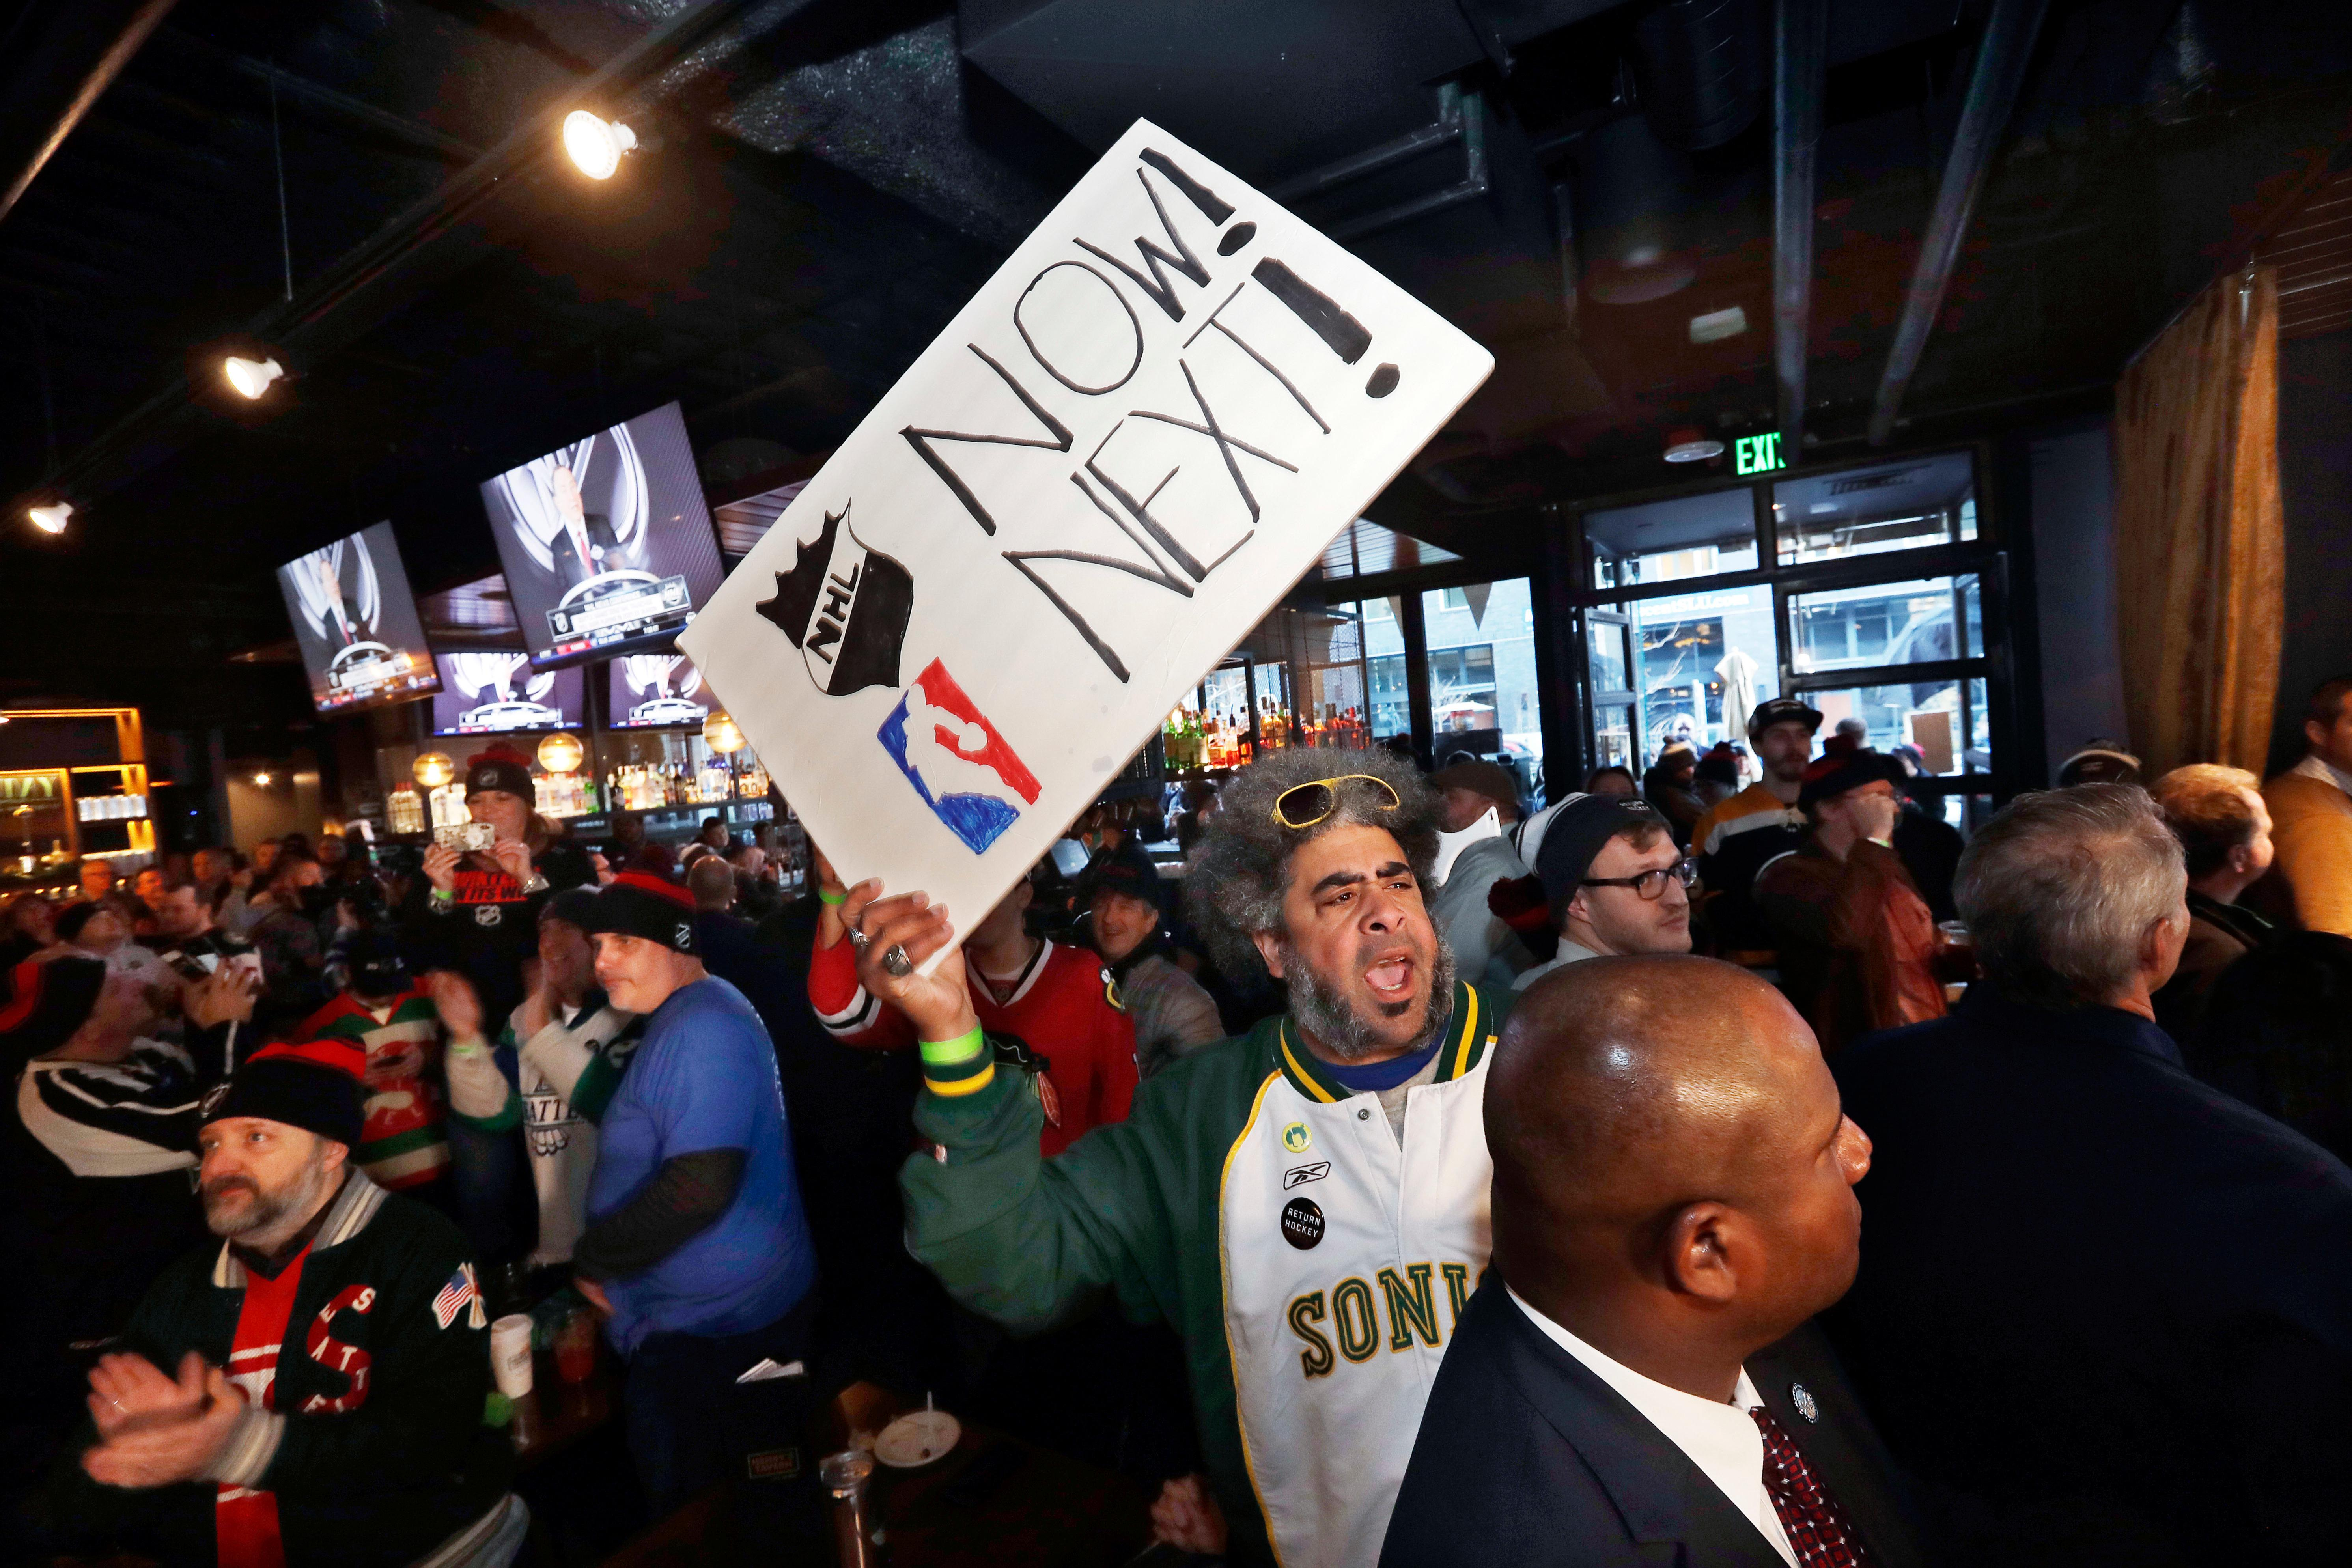 "Kris ""Sonic Guy"" Brannon holds up a sign in support of adding an NBA team following the announcement of a new NHL hockey team in Seattle, at a celebratory party Tuesday, Dec. 4, 2018, in Seattle.  (AP Photo/Elaine Thompson)"